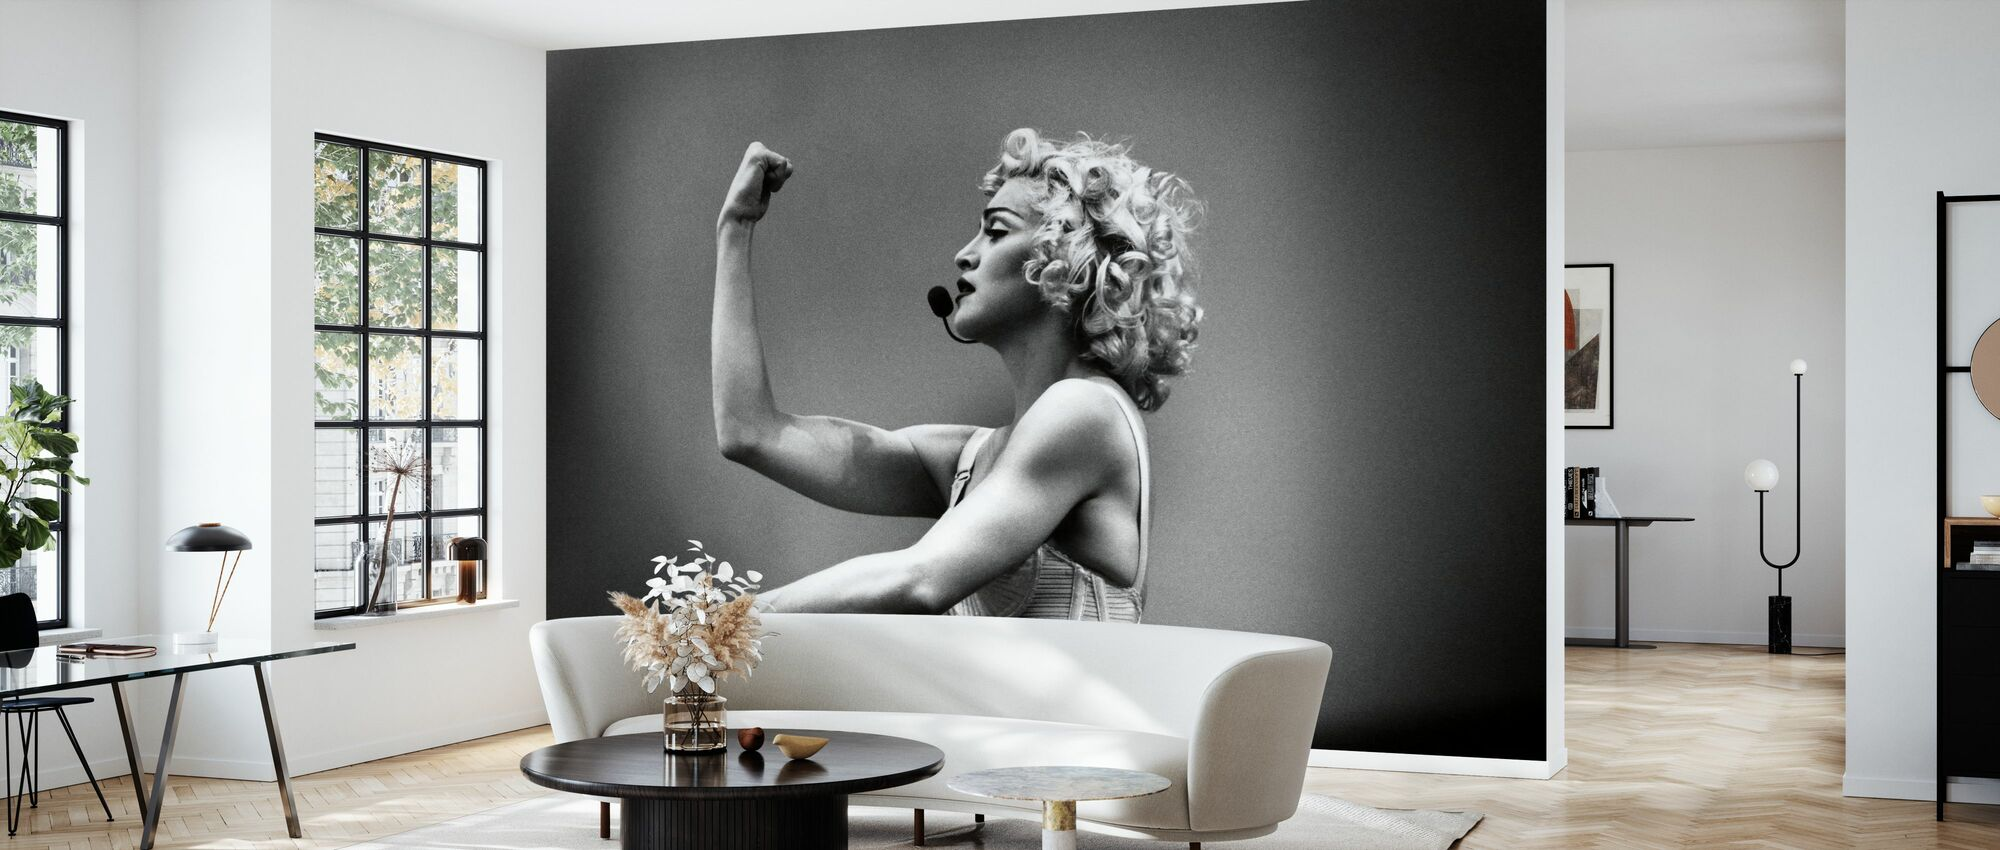 MADONNA CANVAS PICTURE PRINT WALL ART DESIGN HOME DECOR FREE FAST DELIVERY